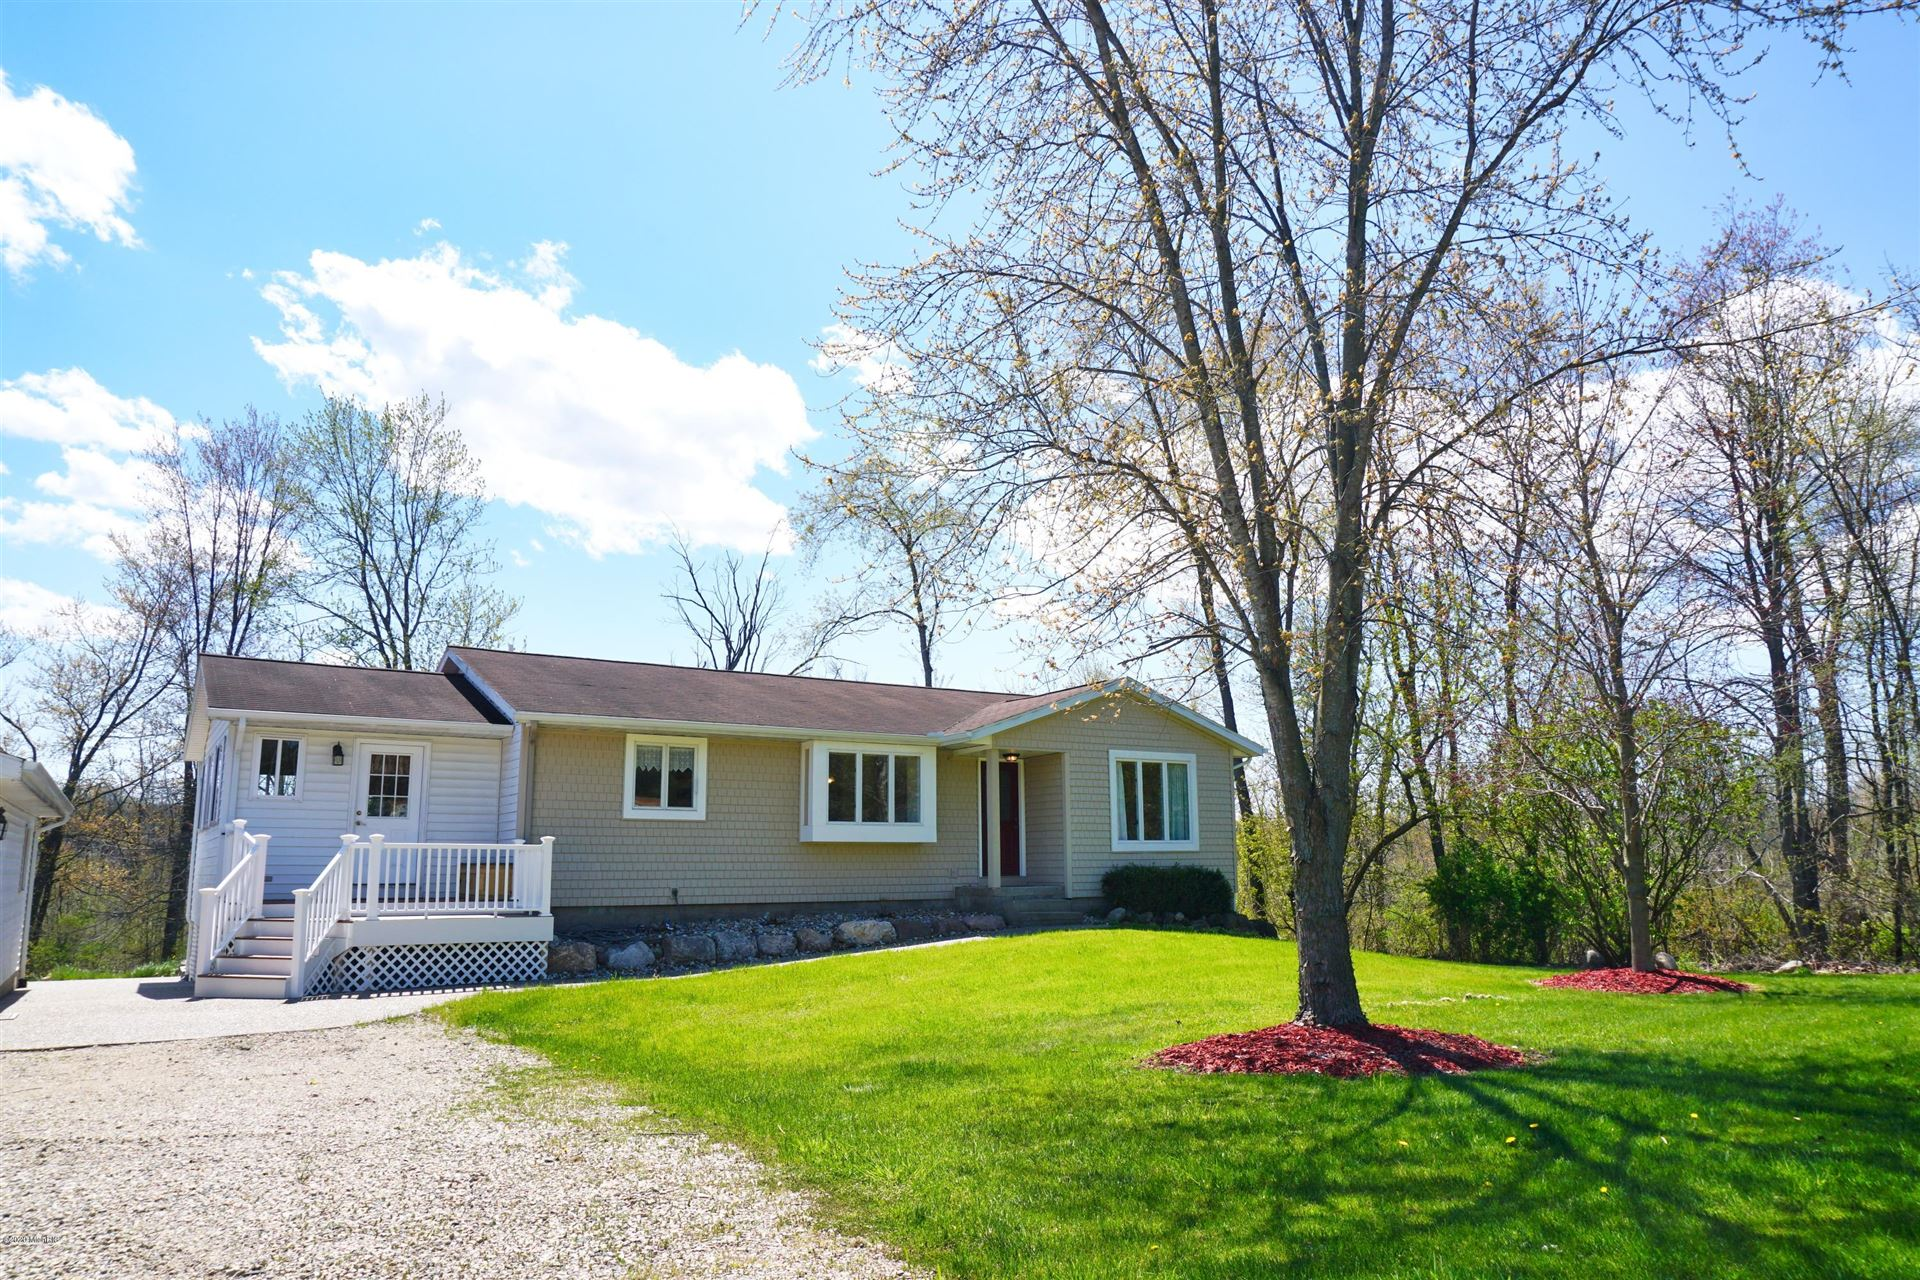 Photo of 11379 Bluewater Highway, Lowell, MI 49331 (MLS # 20014990)